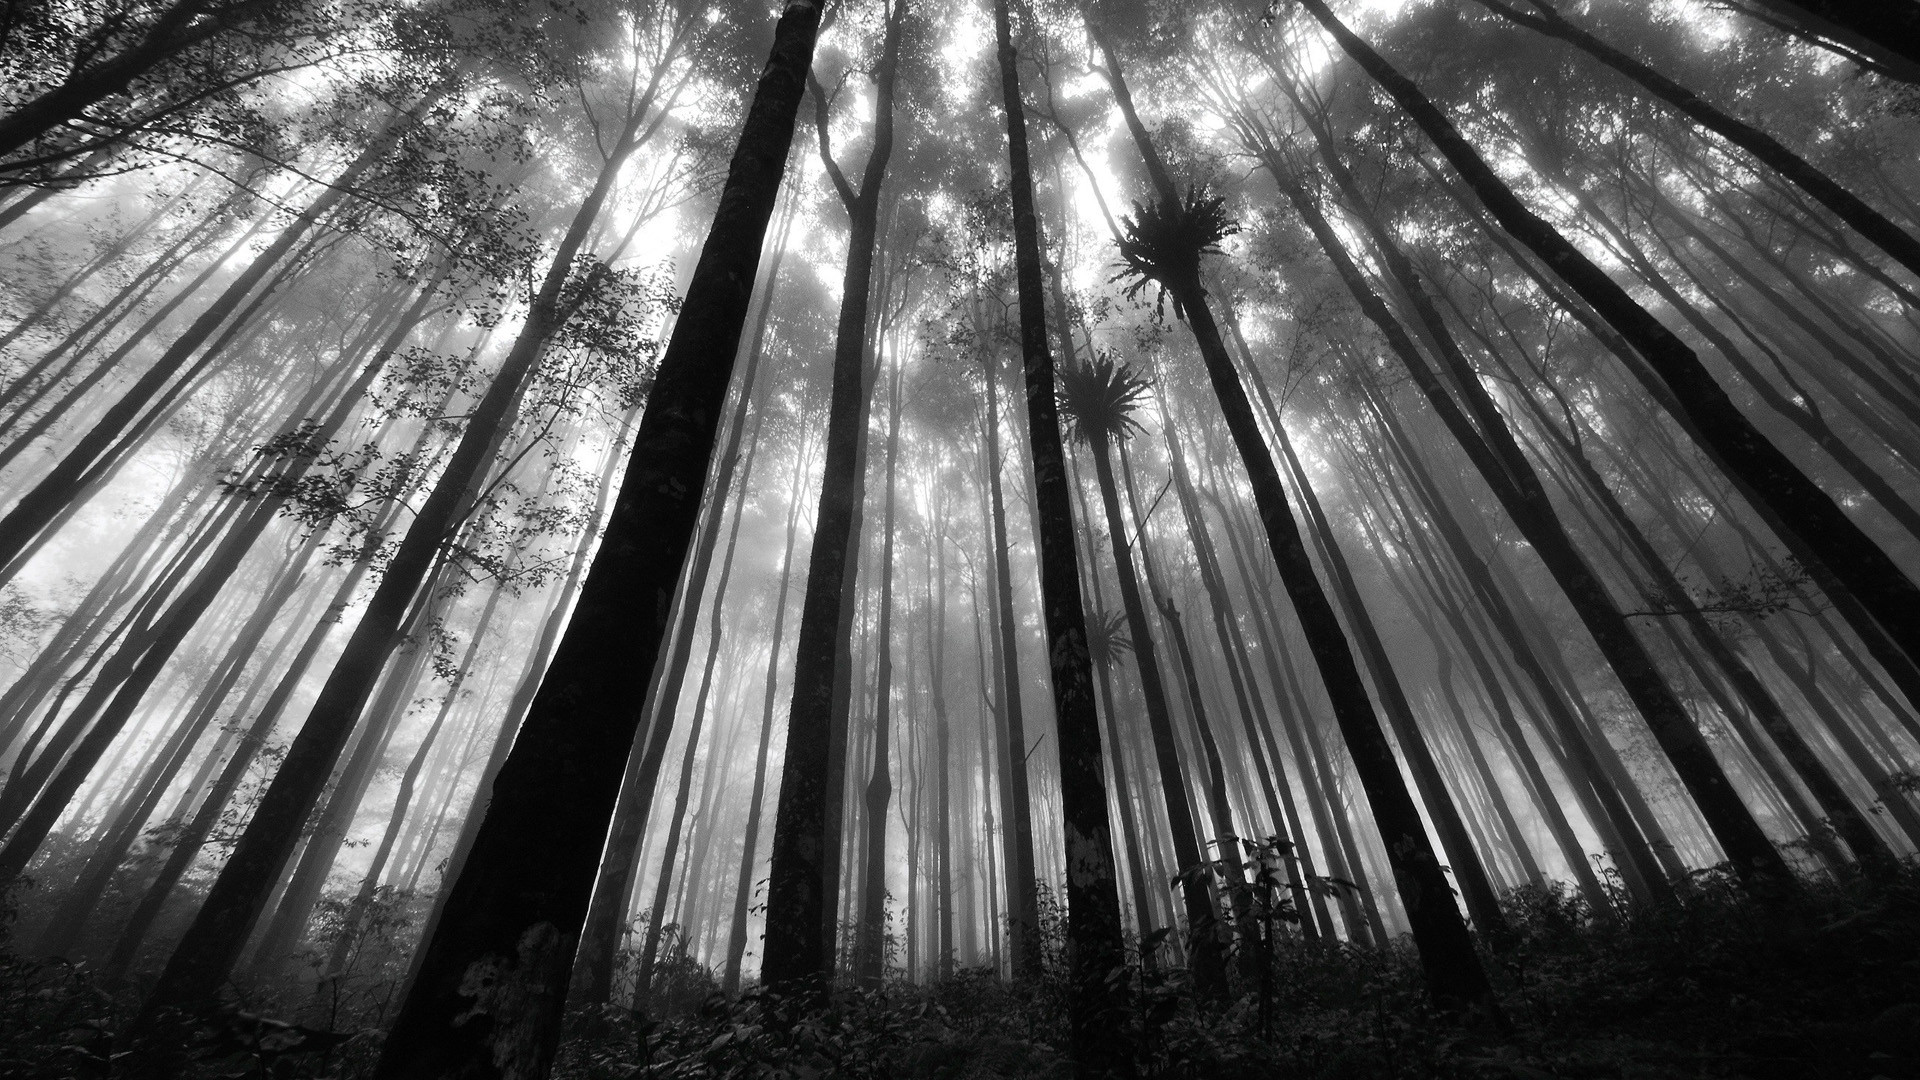 Black And White Pictures Anime Forest 3 Wide Wallpaper. Black And White  Pictures Anime Forest 3 Wide Wallpaper